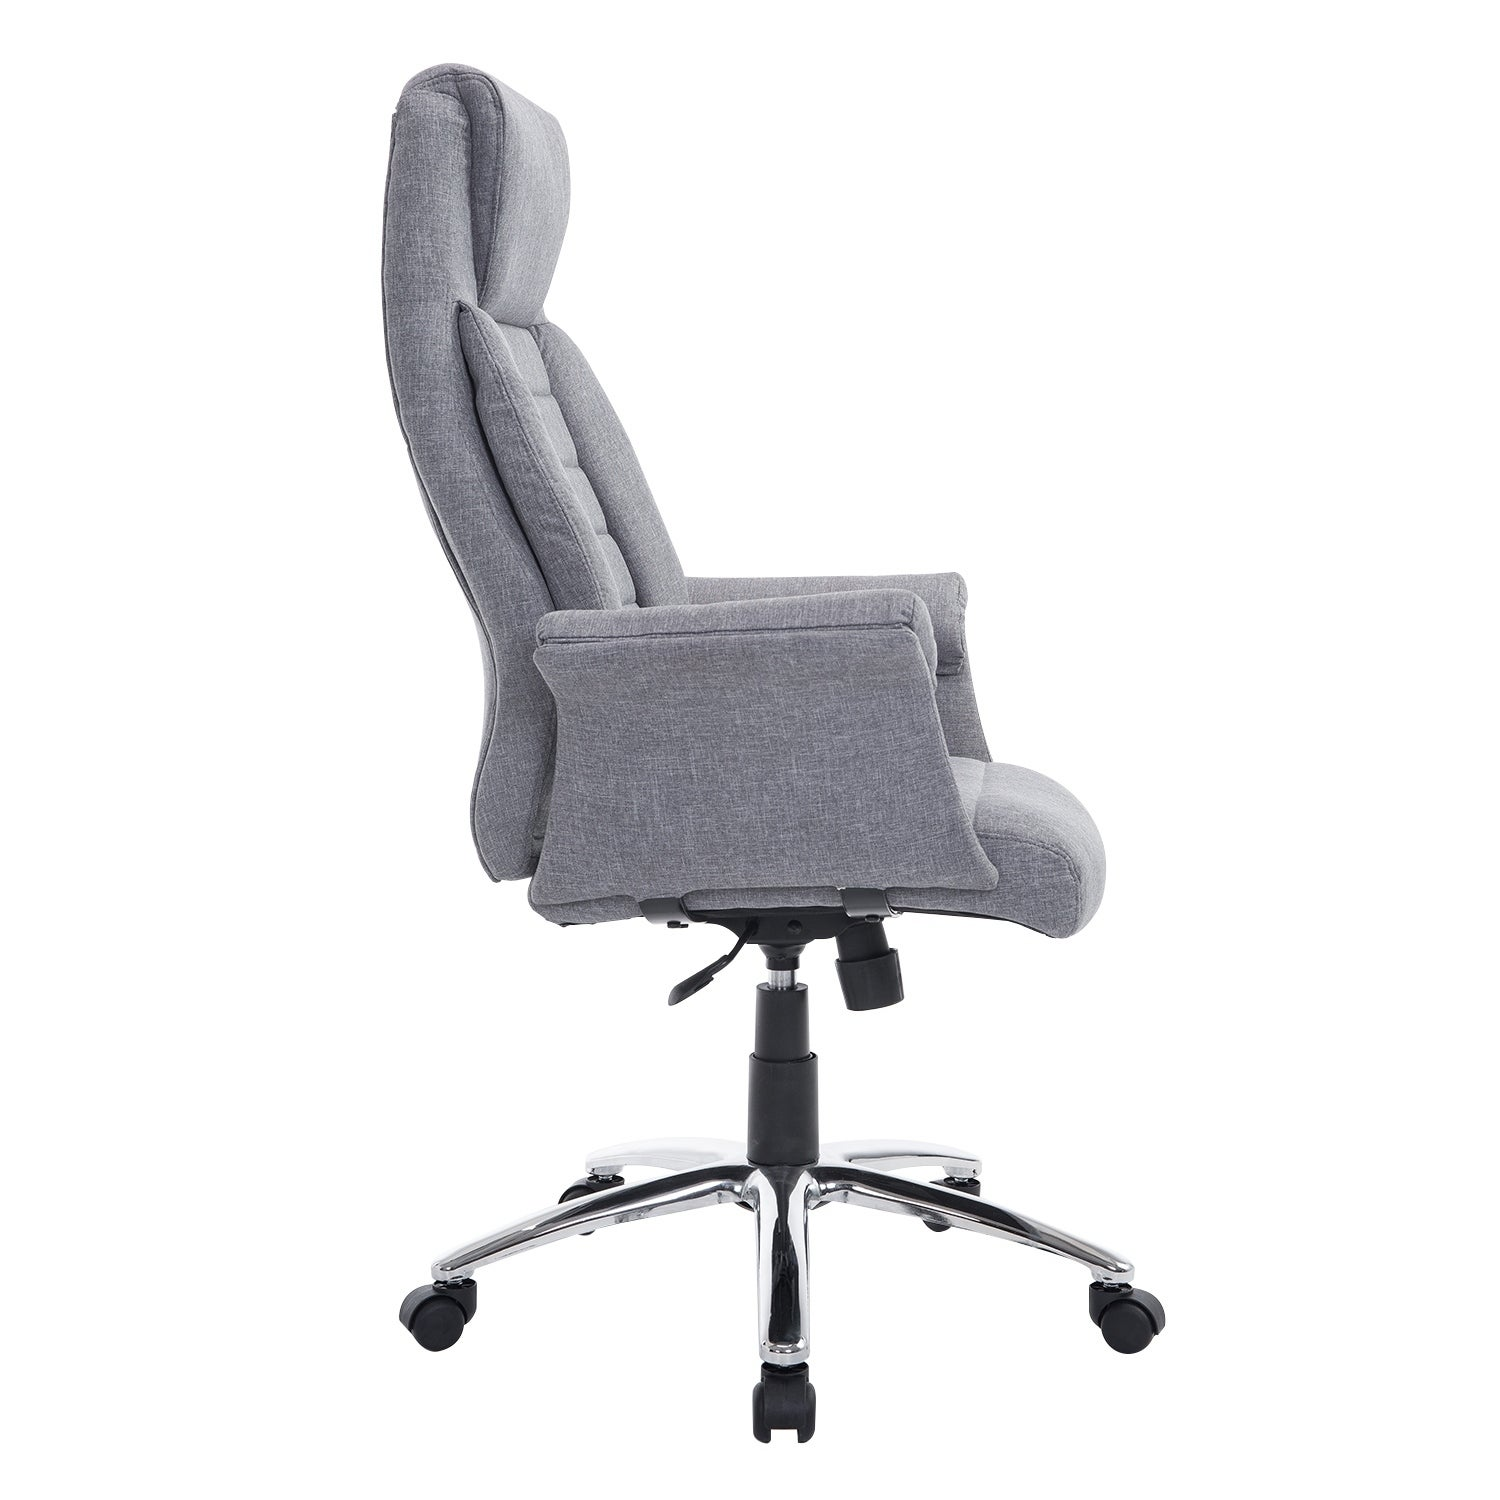 Homcom High Back Fabric Executive Office Chair Light Gray Free Shipping Today 18088228